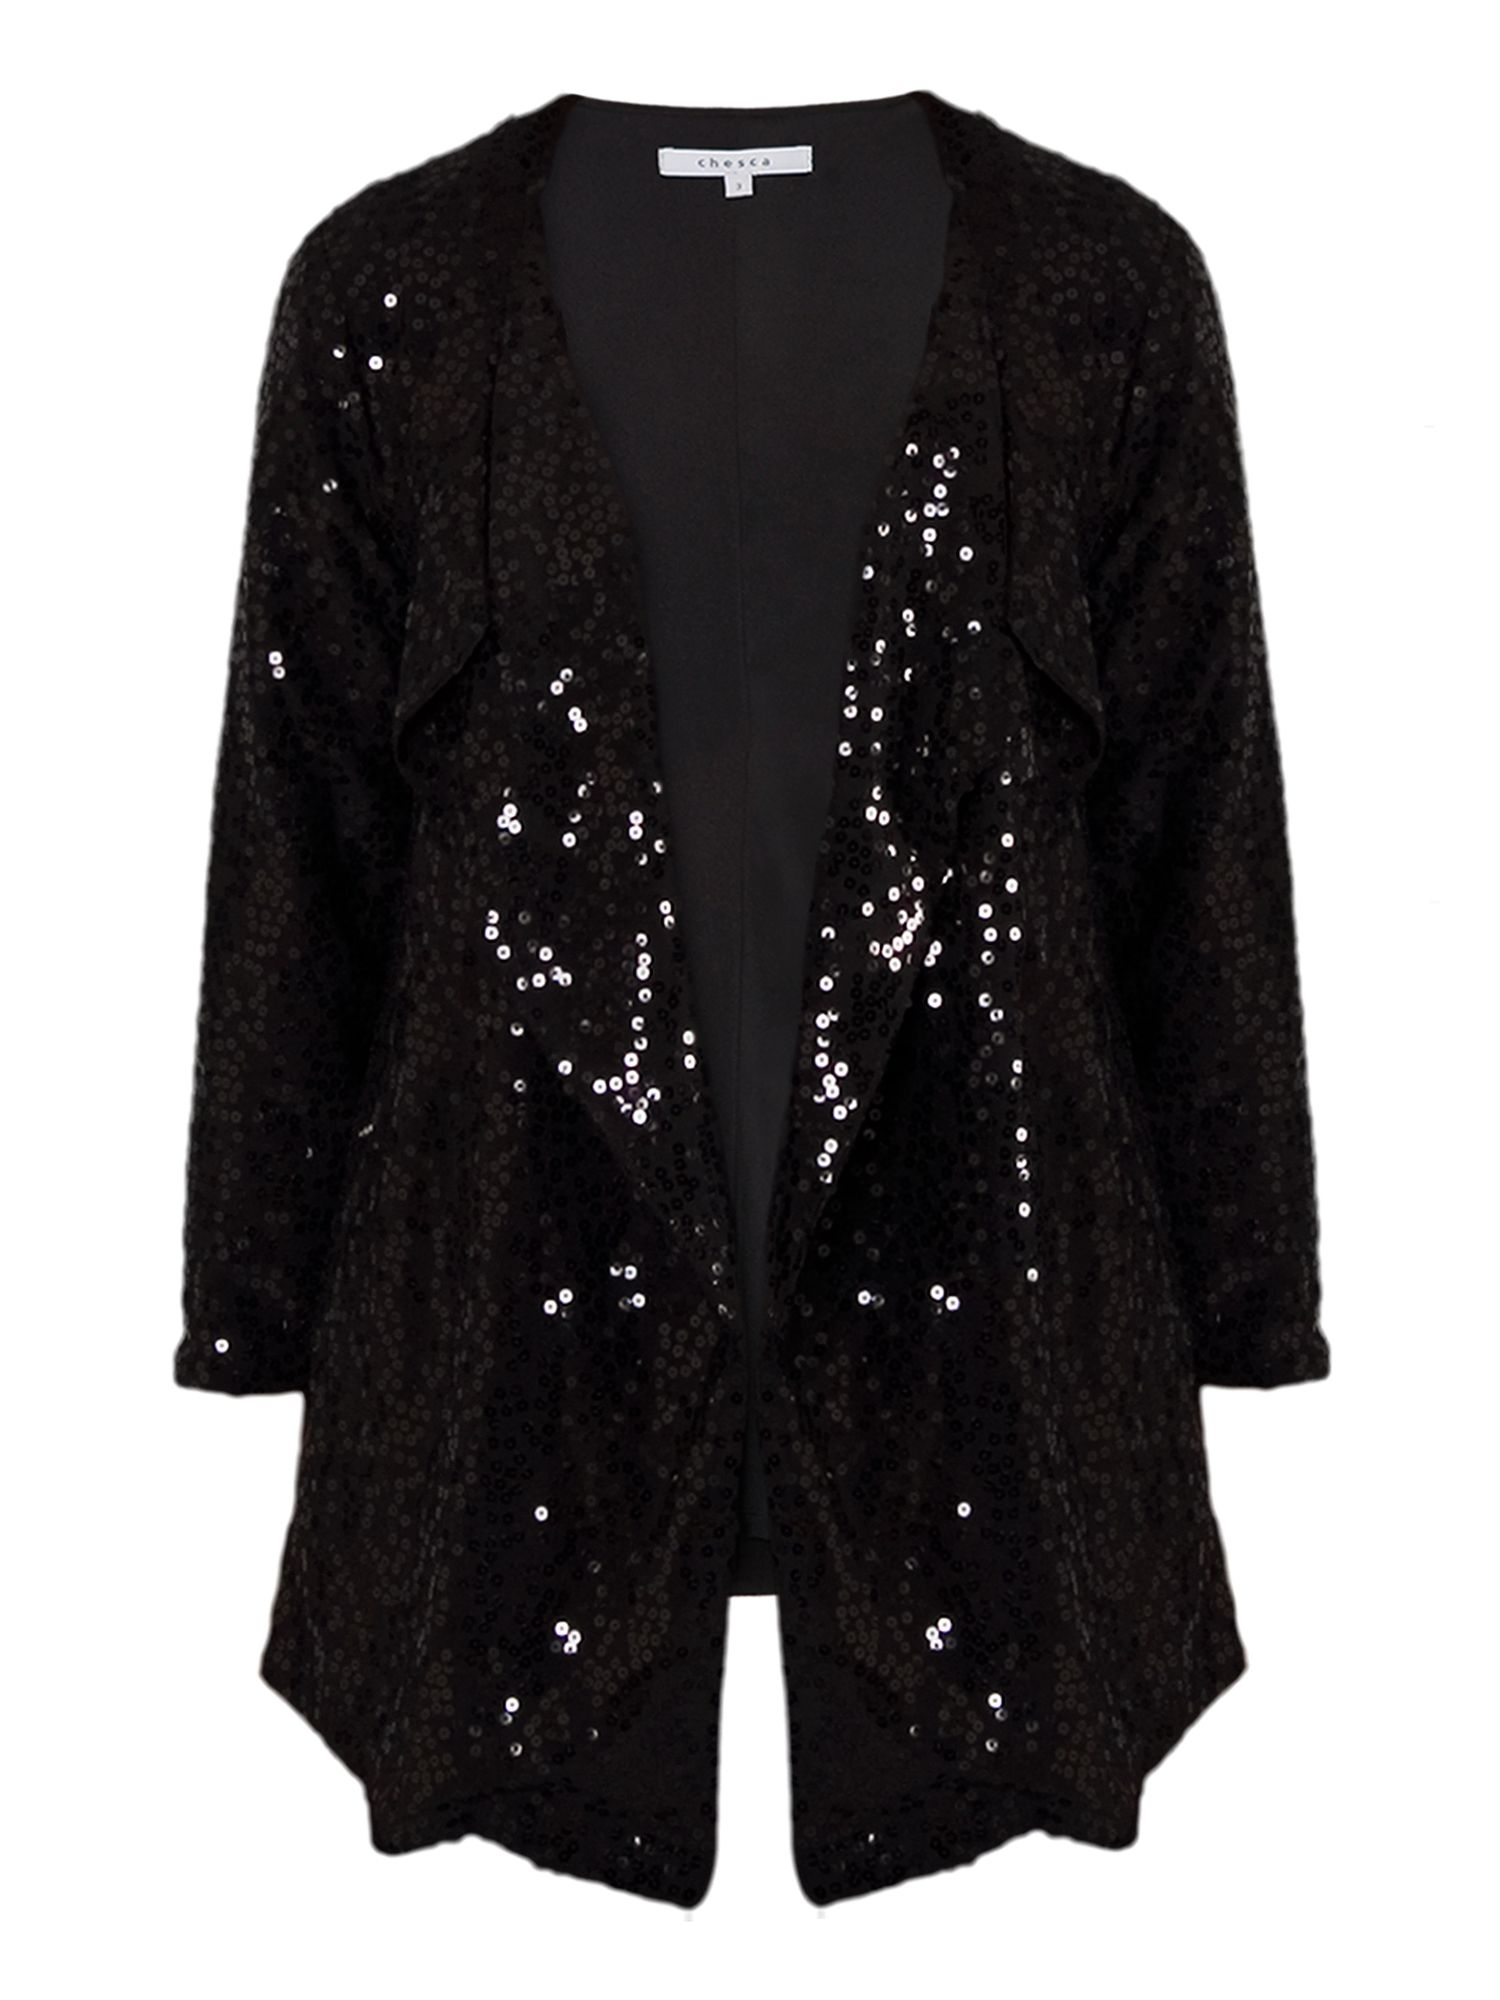 Sequinned jacket